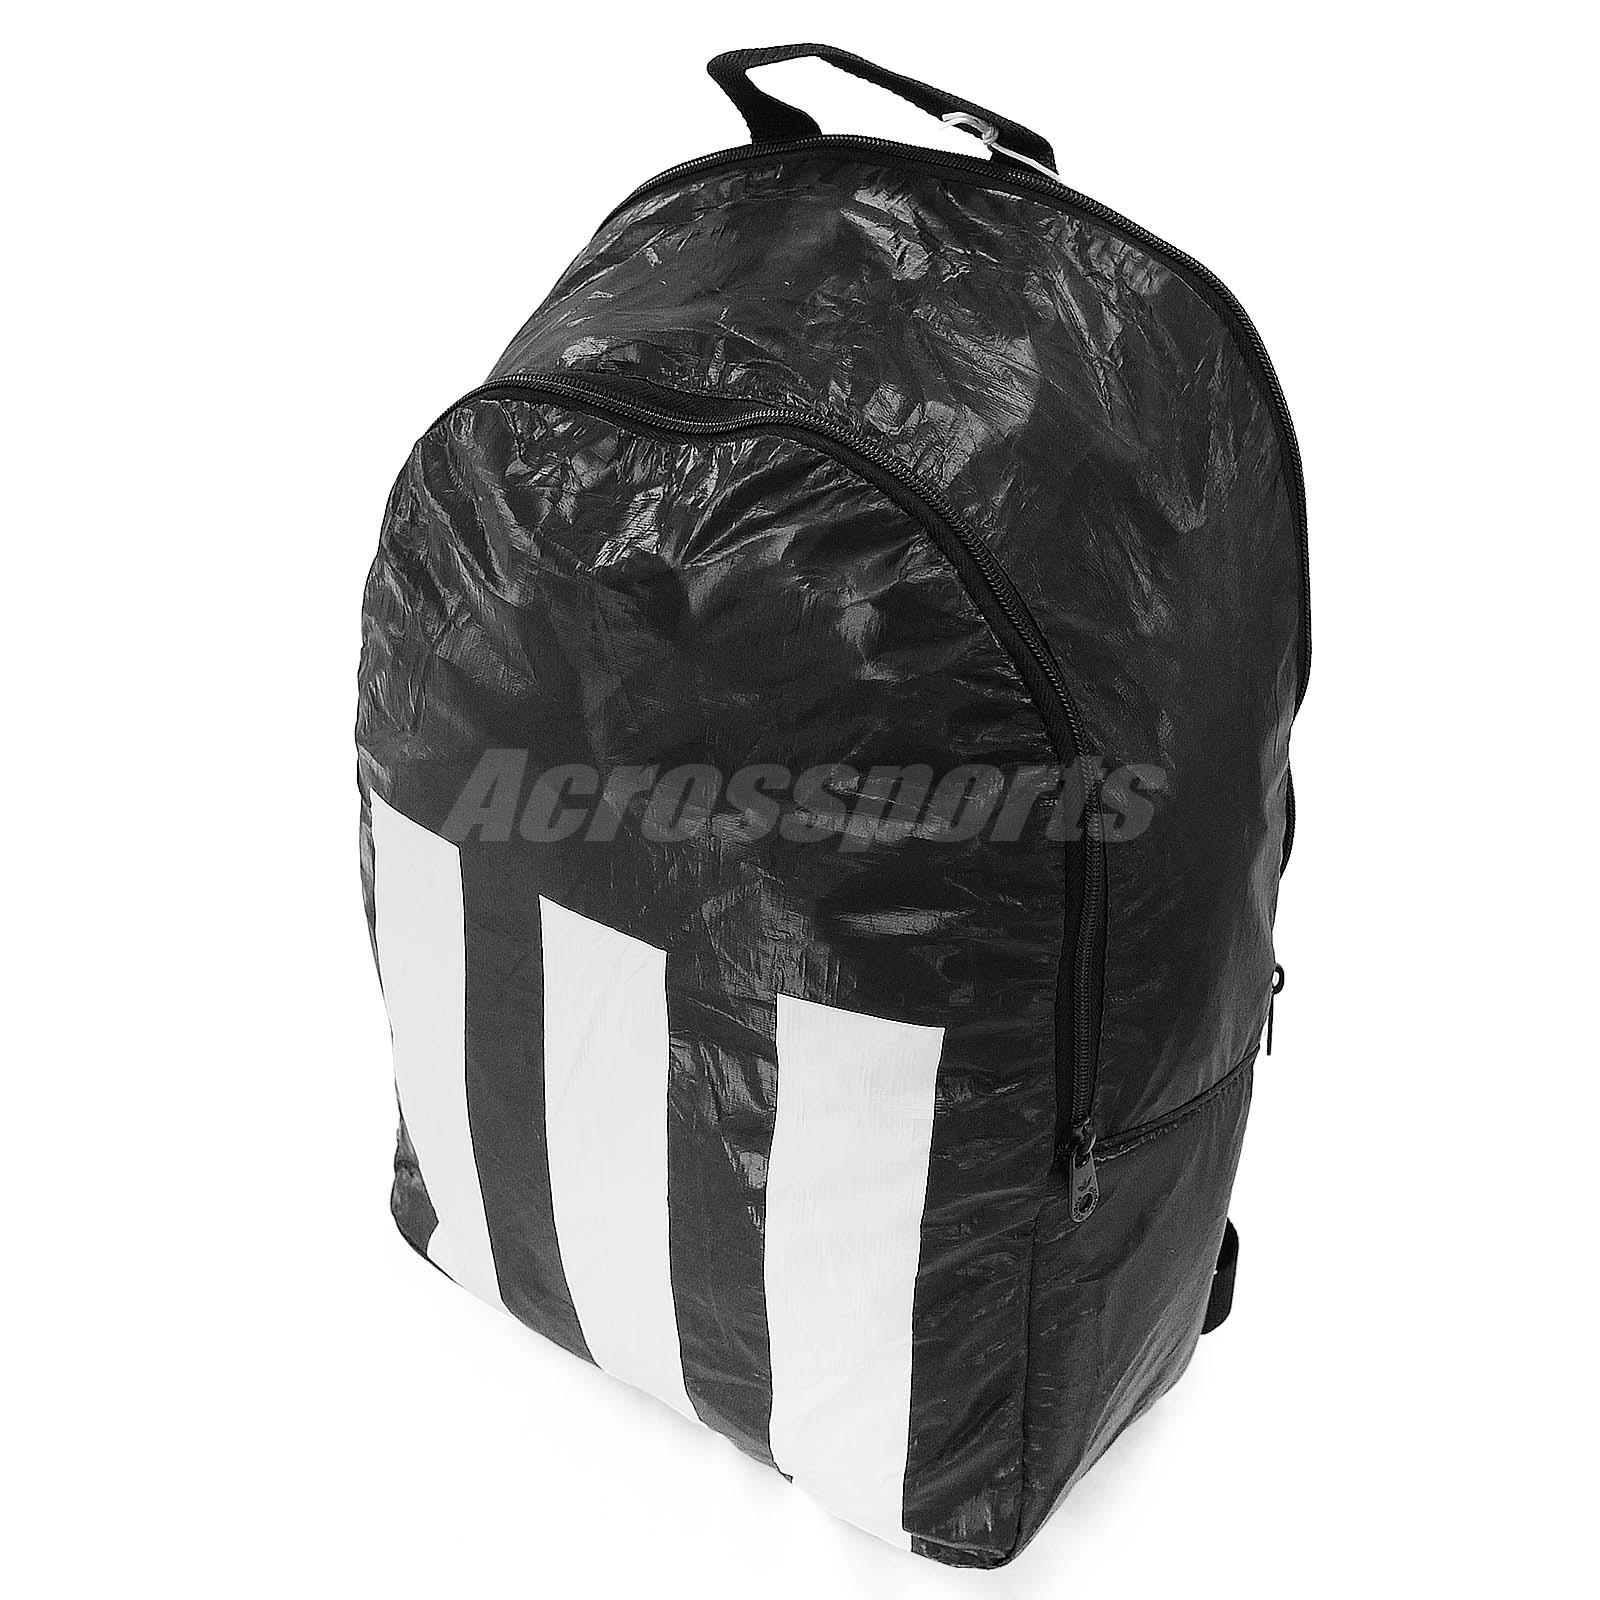 Details about adidas Performance Berlin Backpack Black White 3-Stripes Book  Bag AB2990 827fd754cd48c